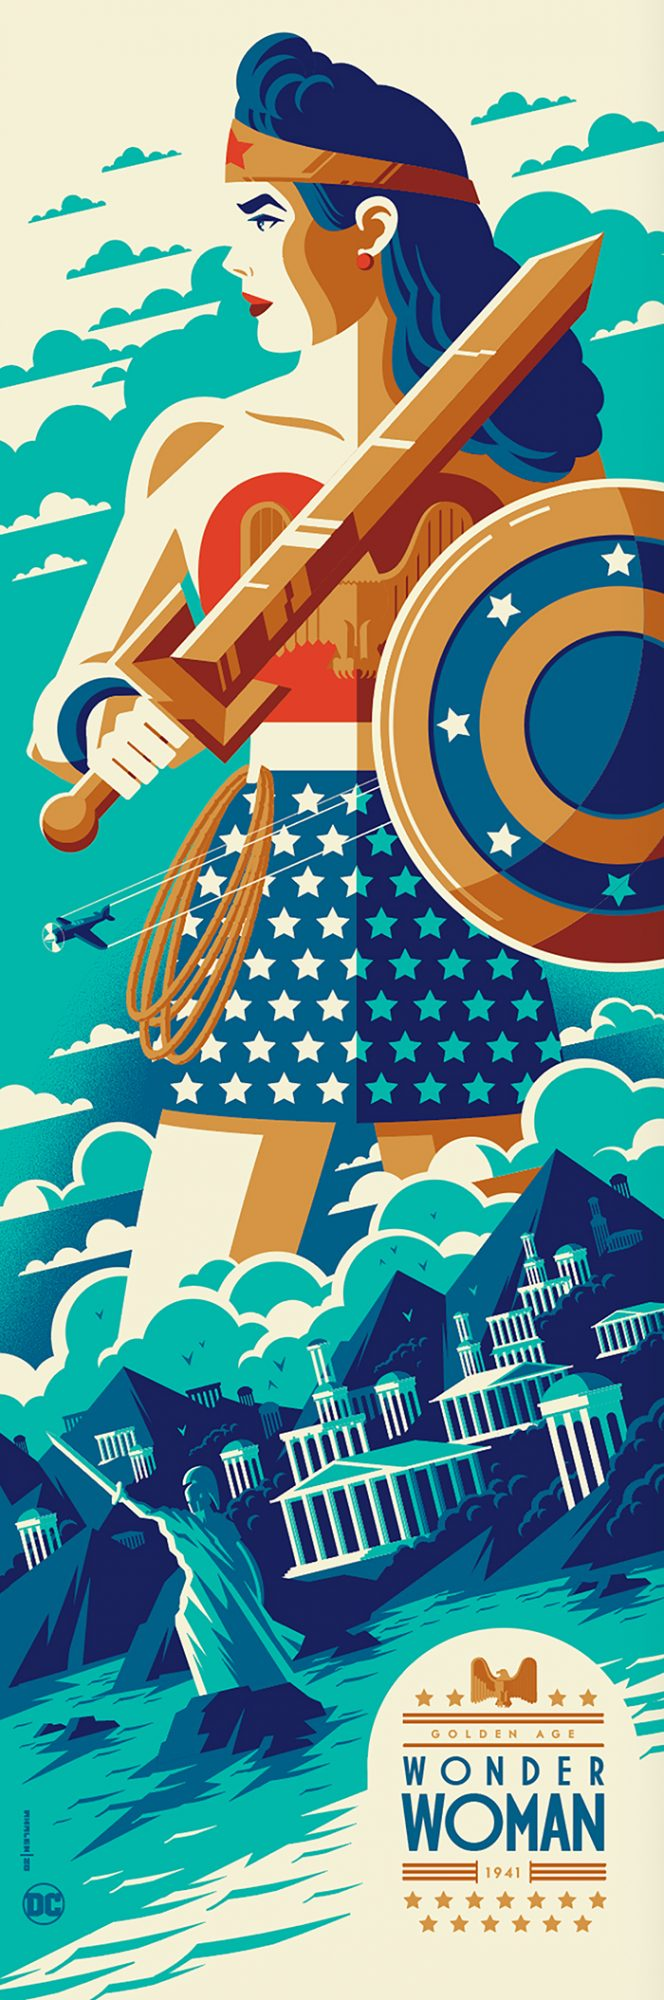 Golden Age: Wonder Woman - Tom Whalen (Variant)